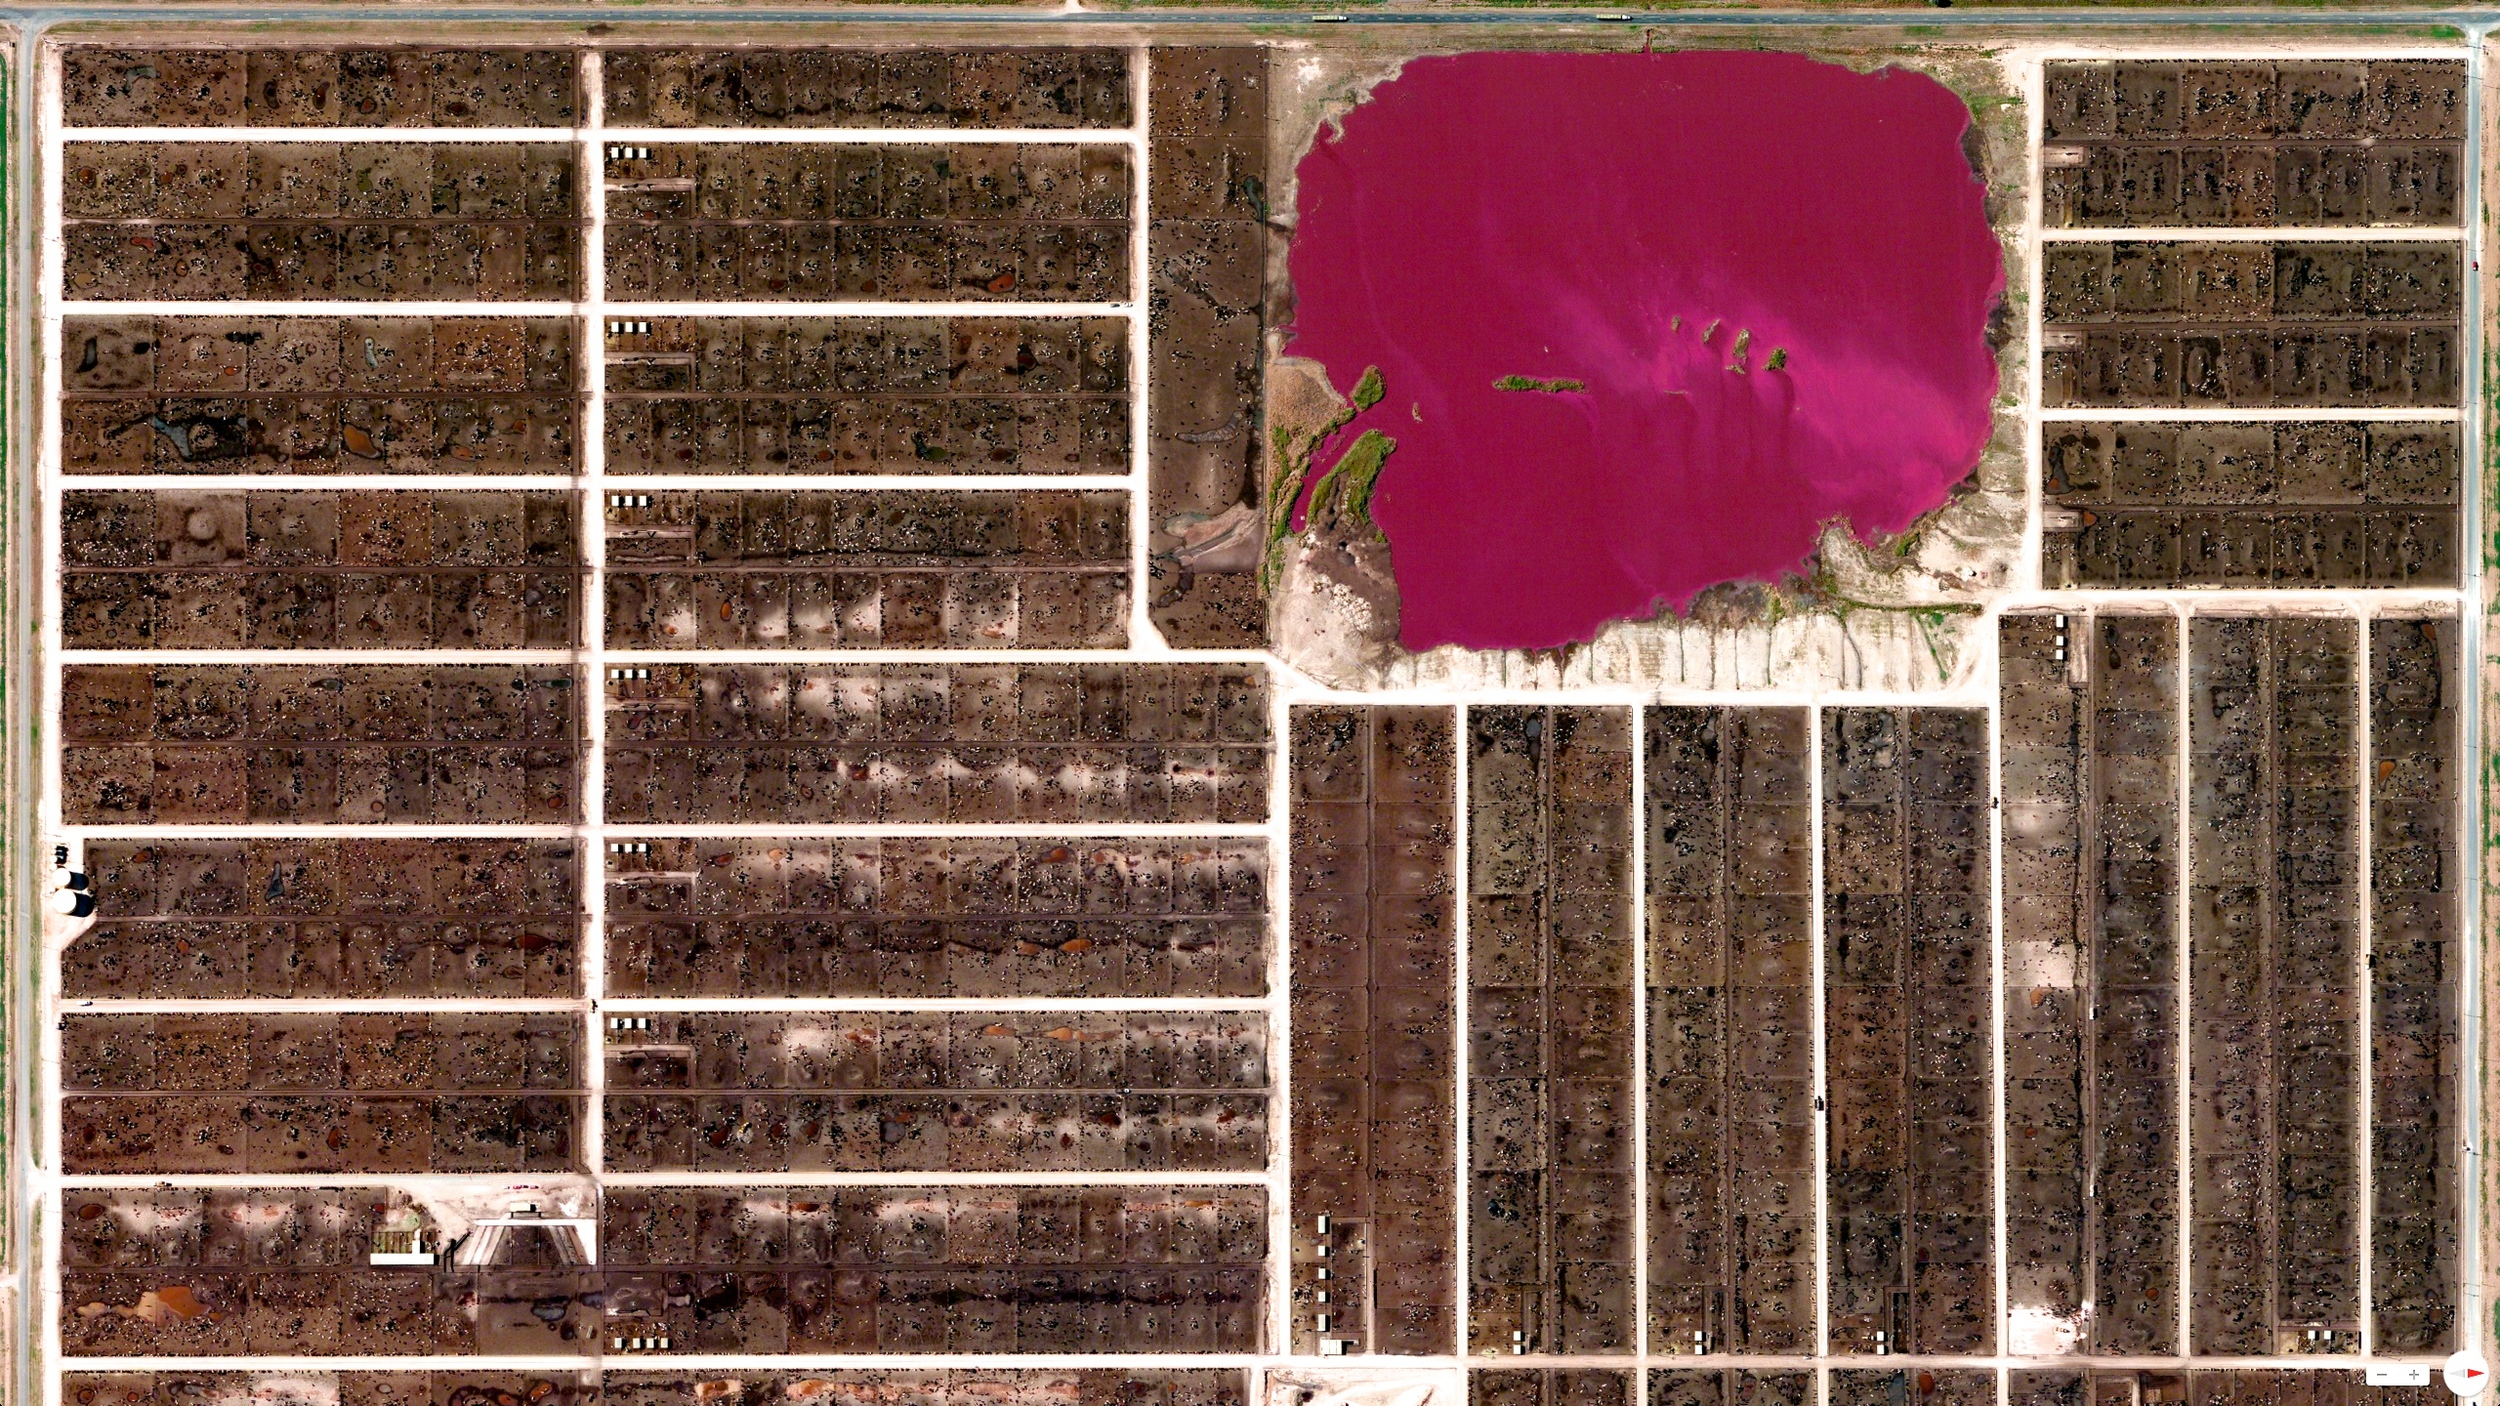 2/9/2014    Cattle feedlots  and  waste lagoon   Summerfield, Texas, USA   34°44′17″N 102°30′26″W